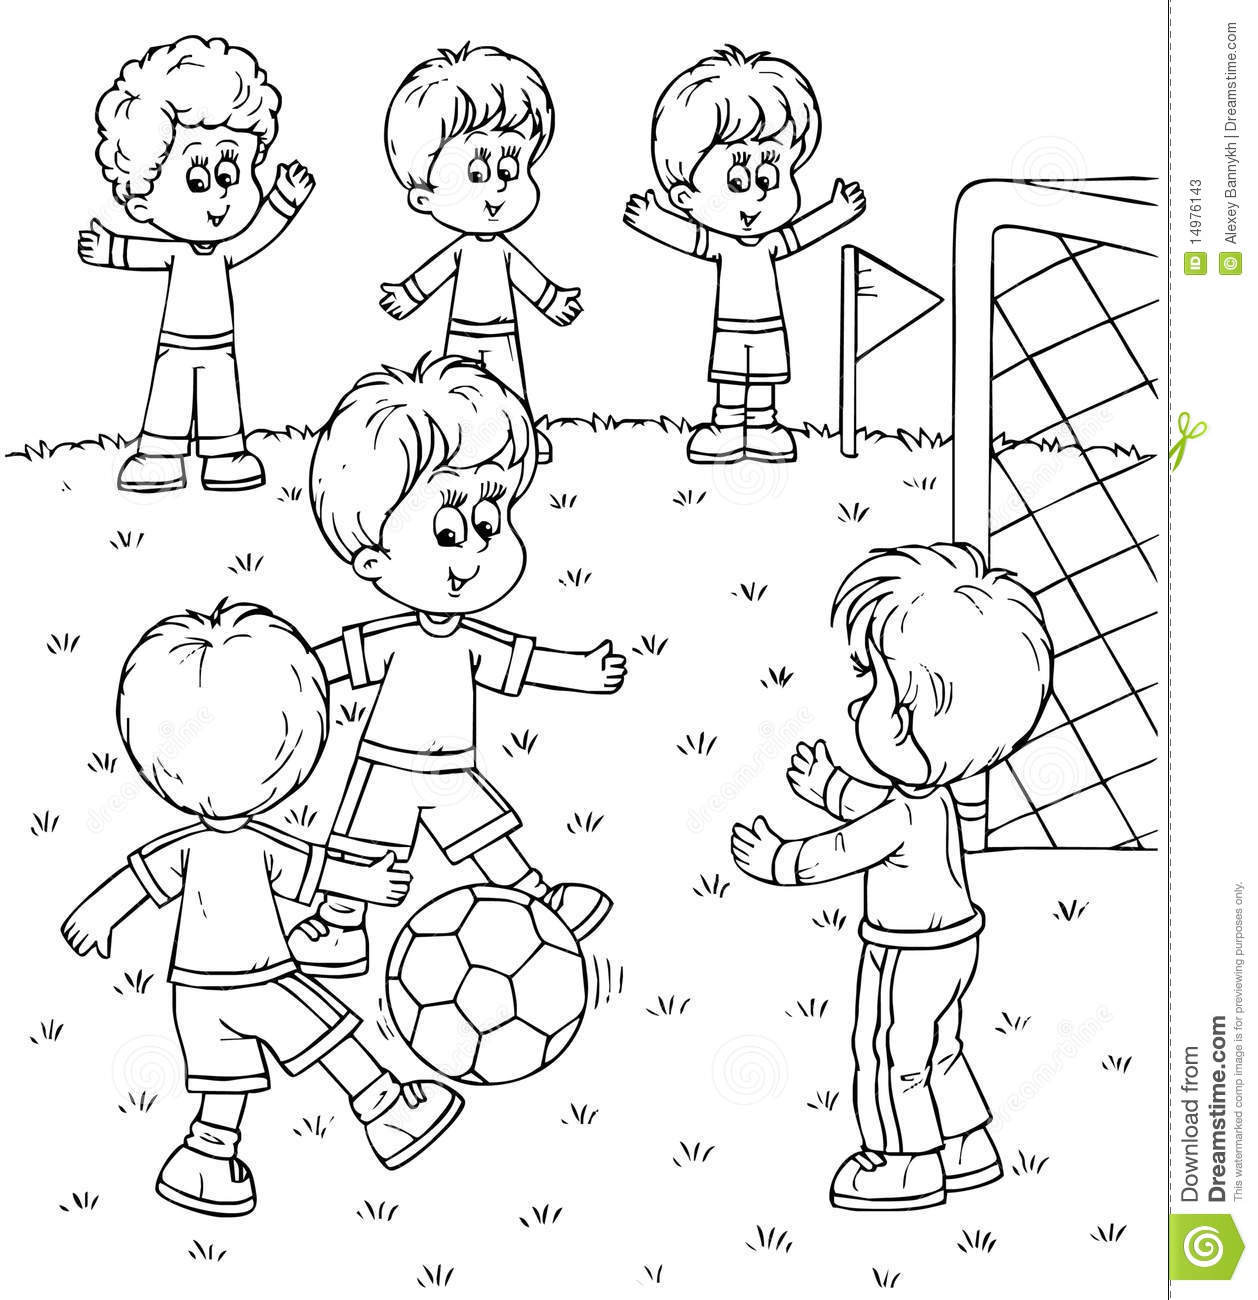 Football players stock illustration. Illustration of ...